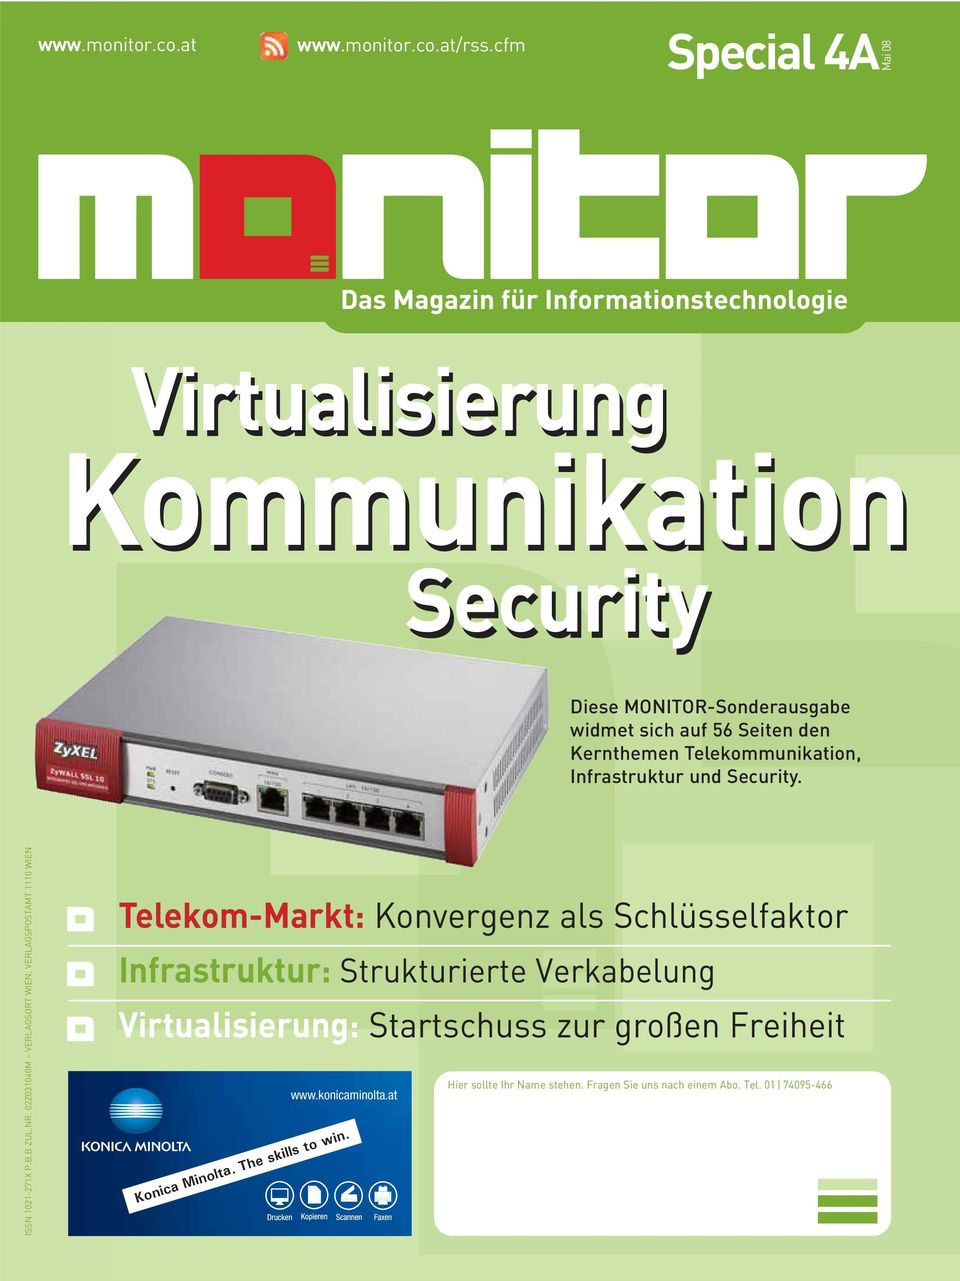 Telekommunikation, Infrastruktur und Security. ISSN 1021-271X P.B.B ZUL.NR.